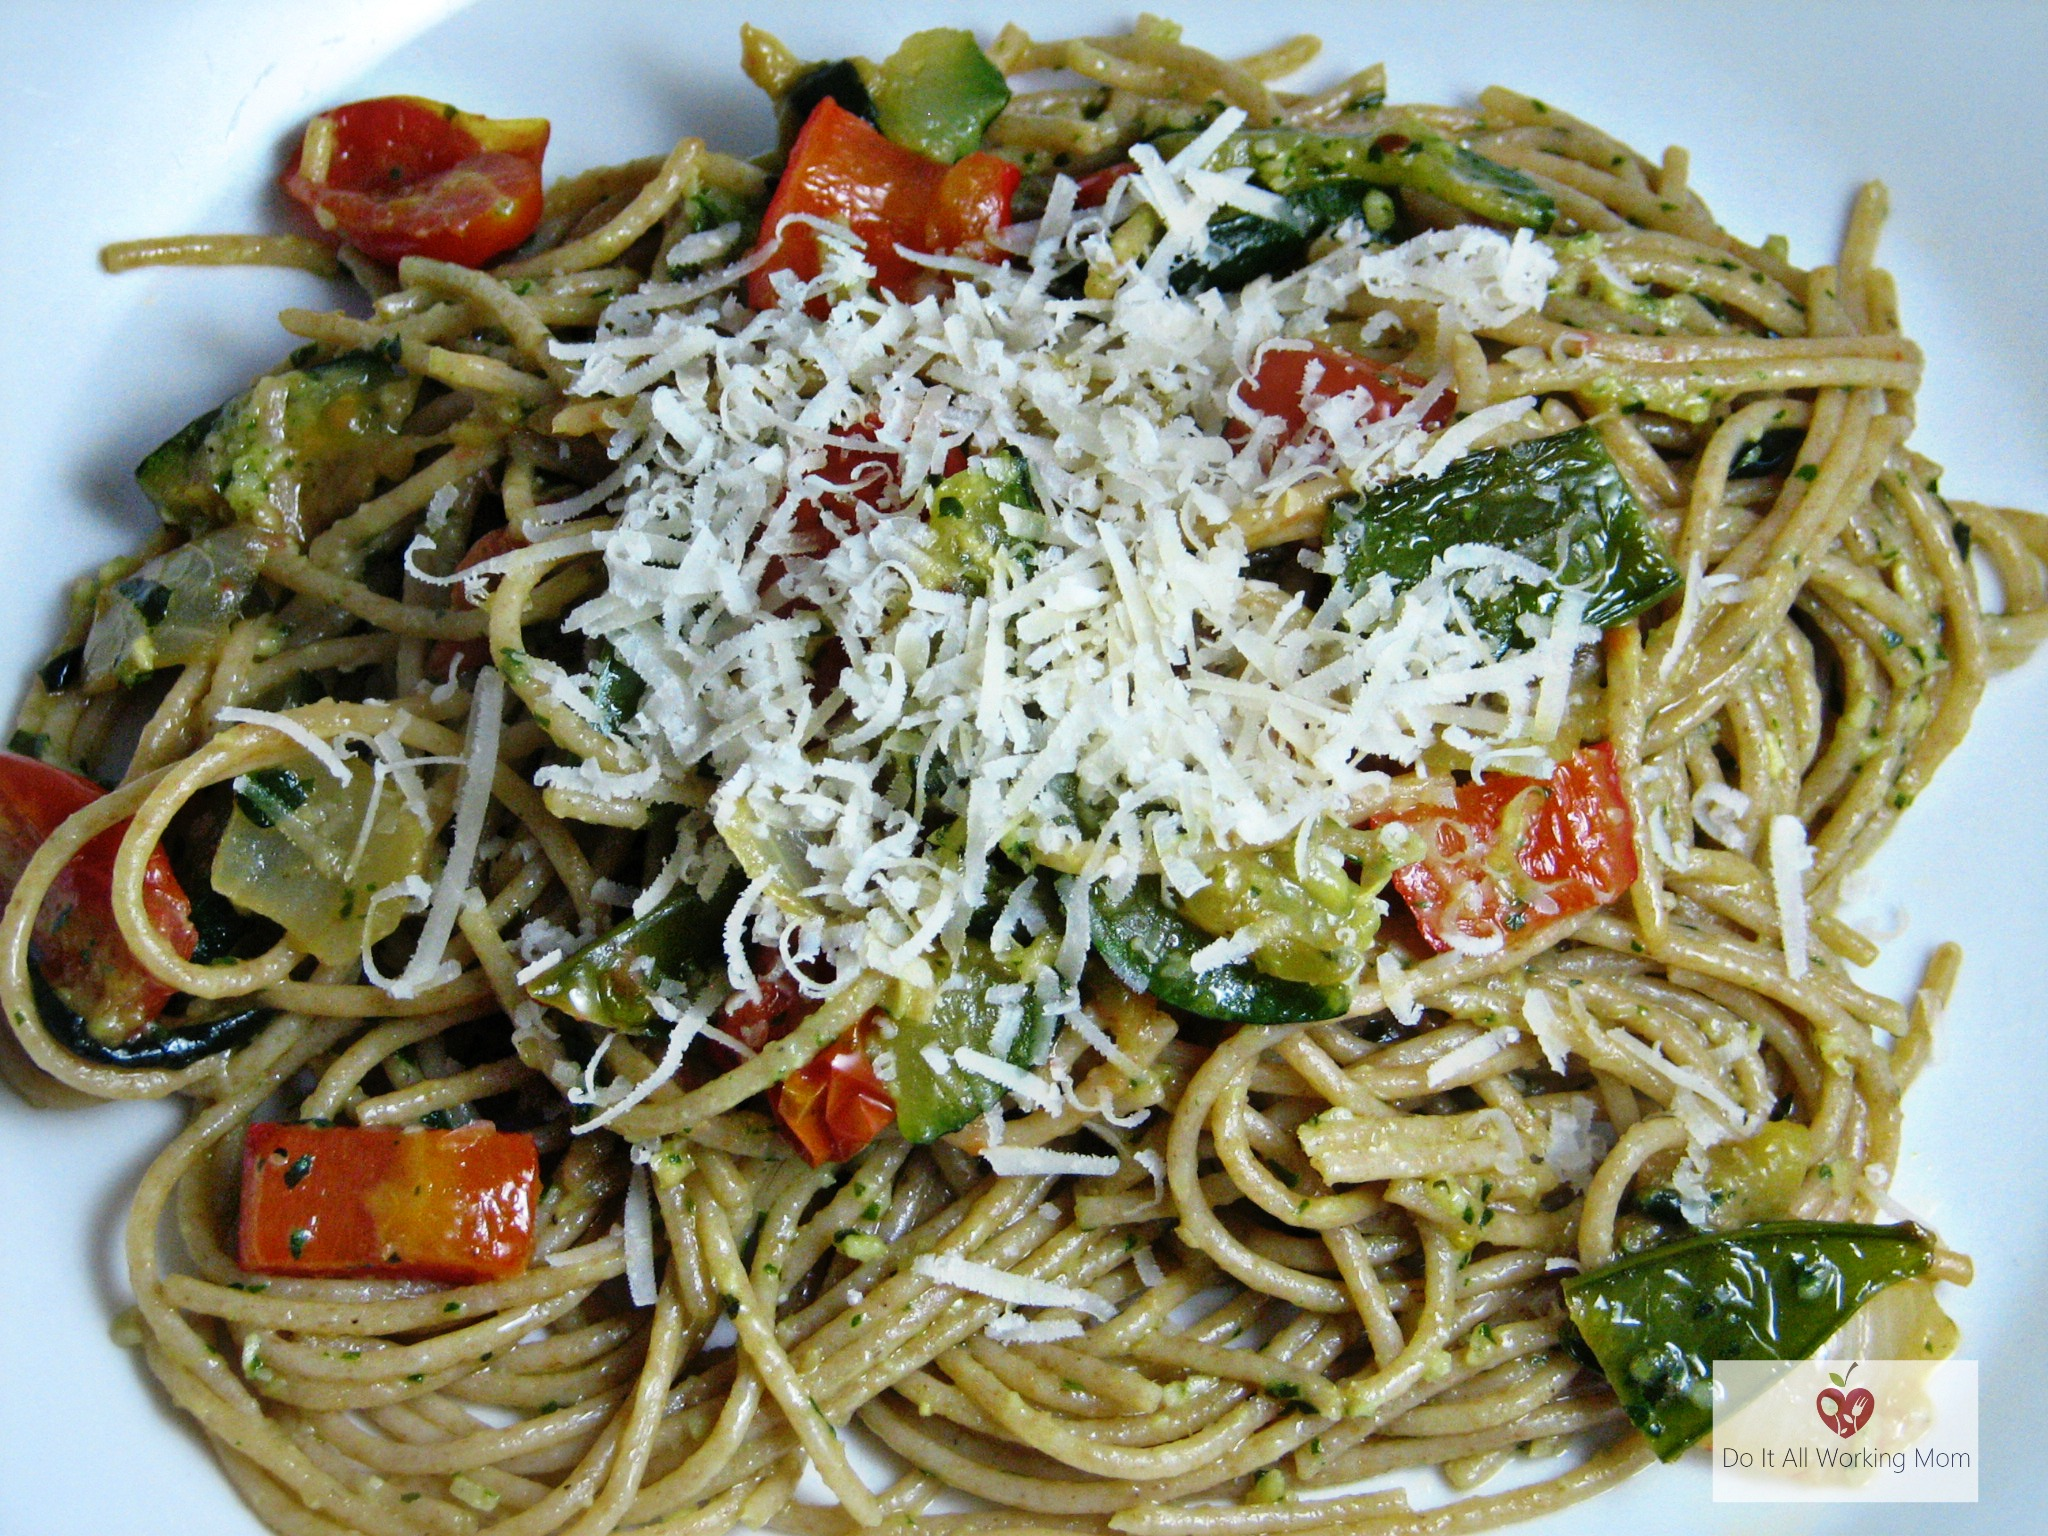 Pesto and Vegetable Pasta Recipe - Do It All Working Mom